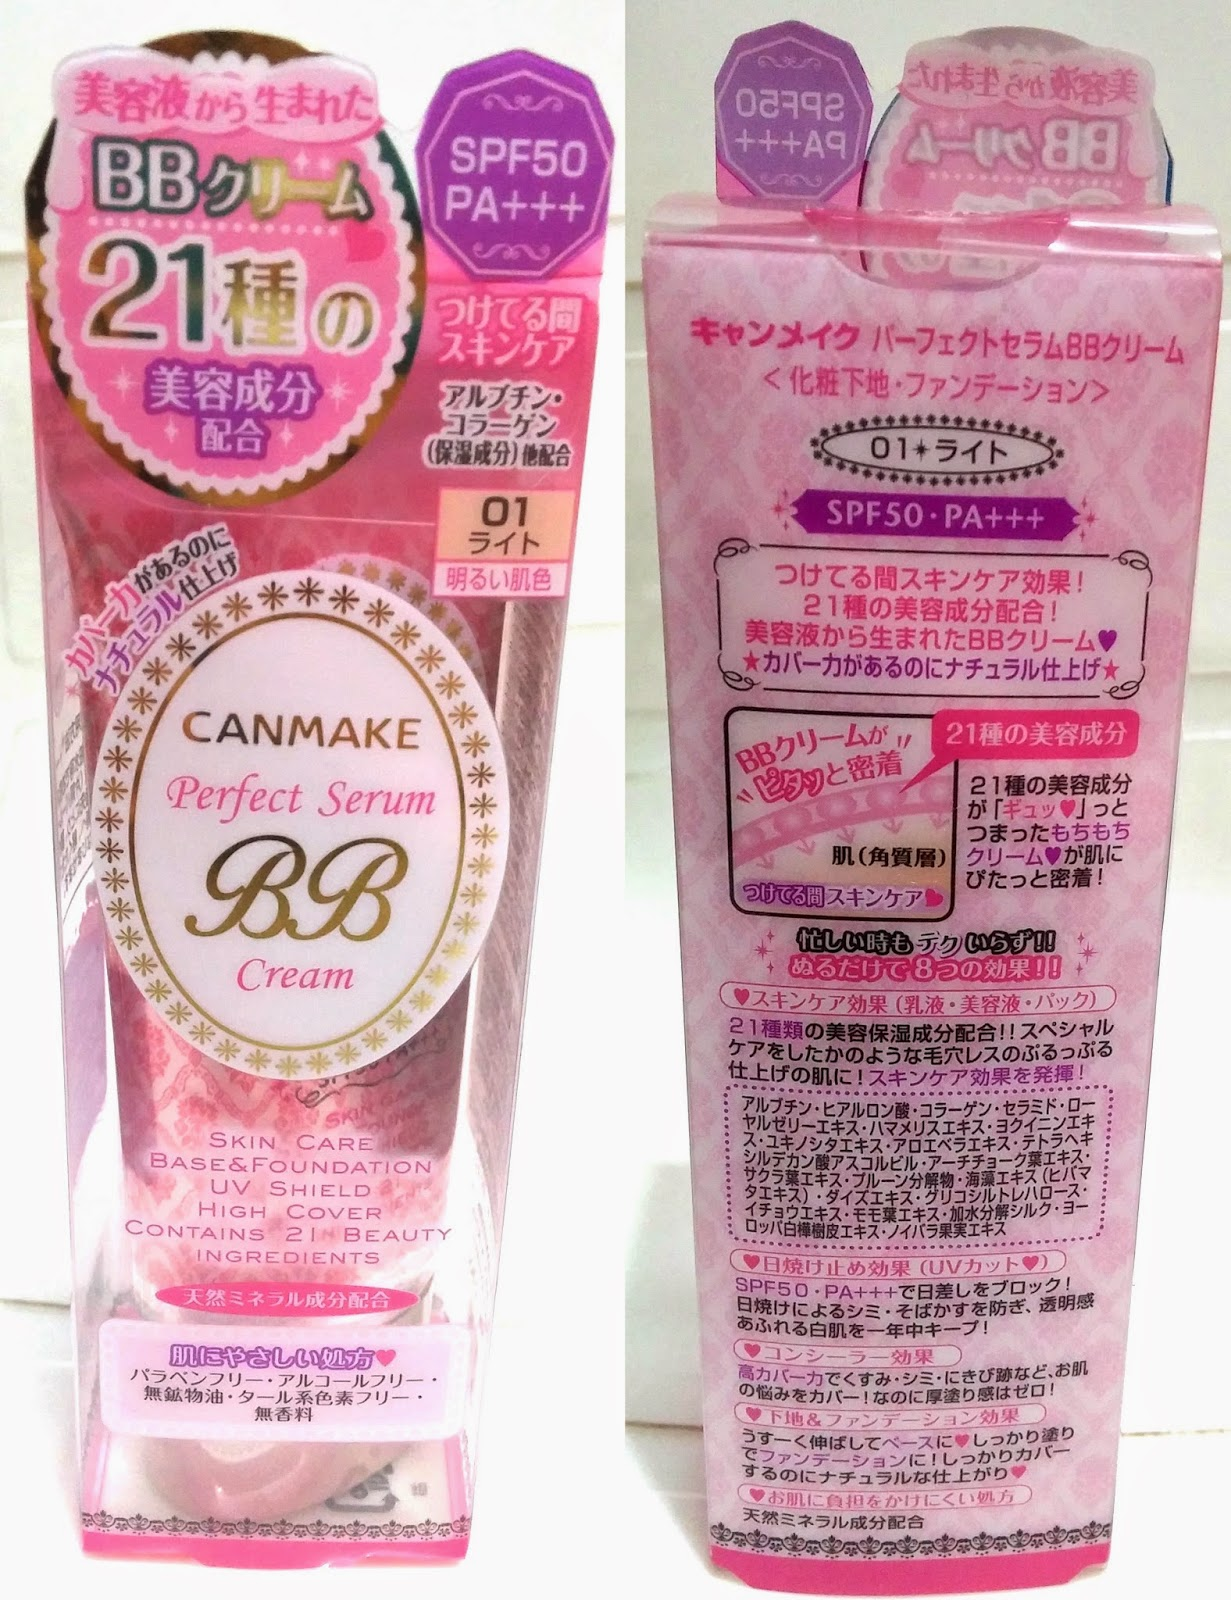 Wateryscenery Canmake Perfect Serum Bb Cream Spf50 Pa In 01 Light Original Truthfully There Are Two Types Of Nowadays Its The And Version Ive Read A Few Reviews That Tells About